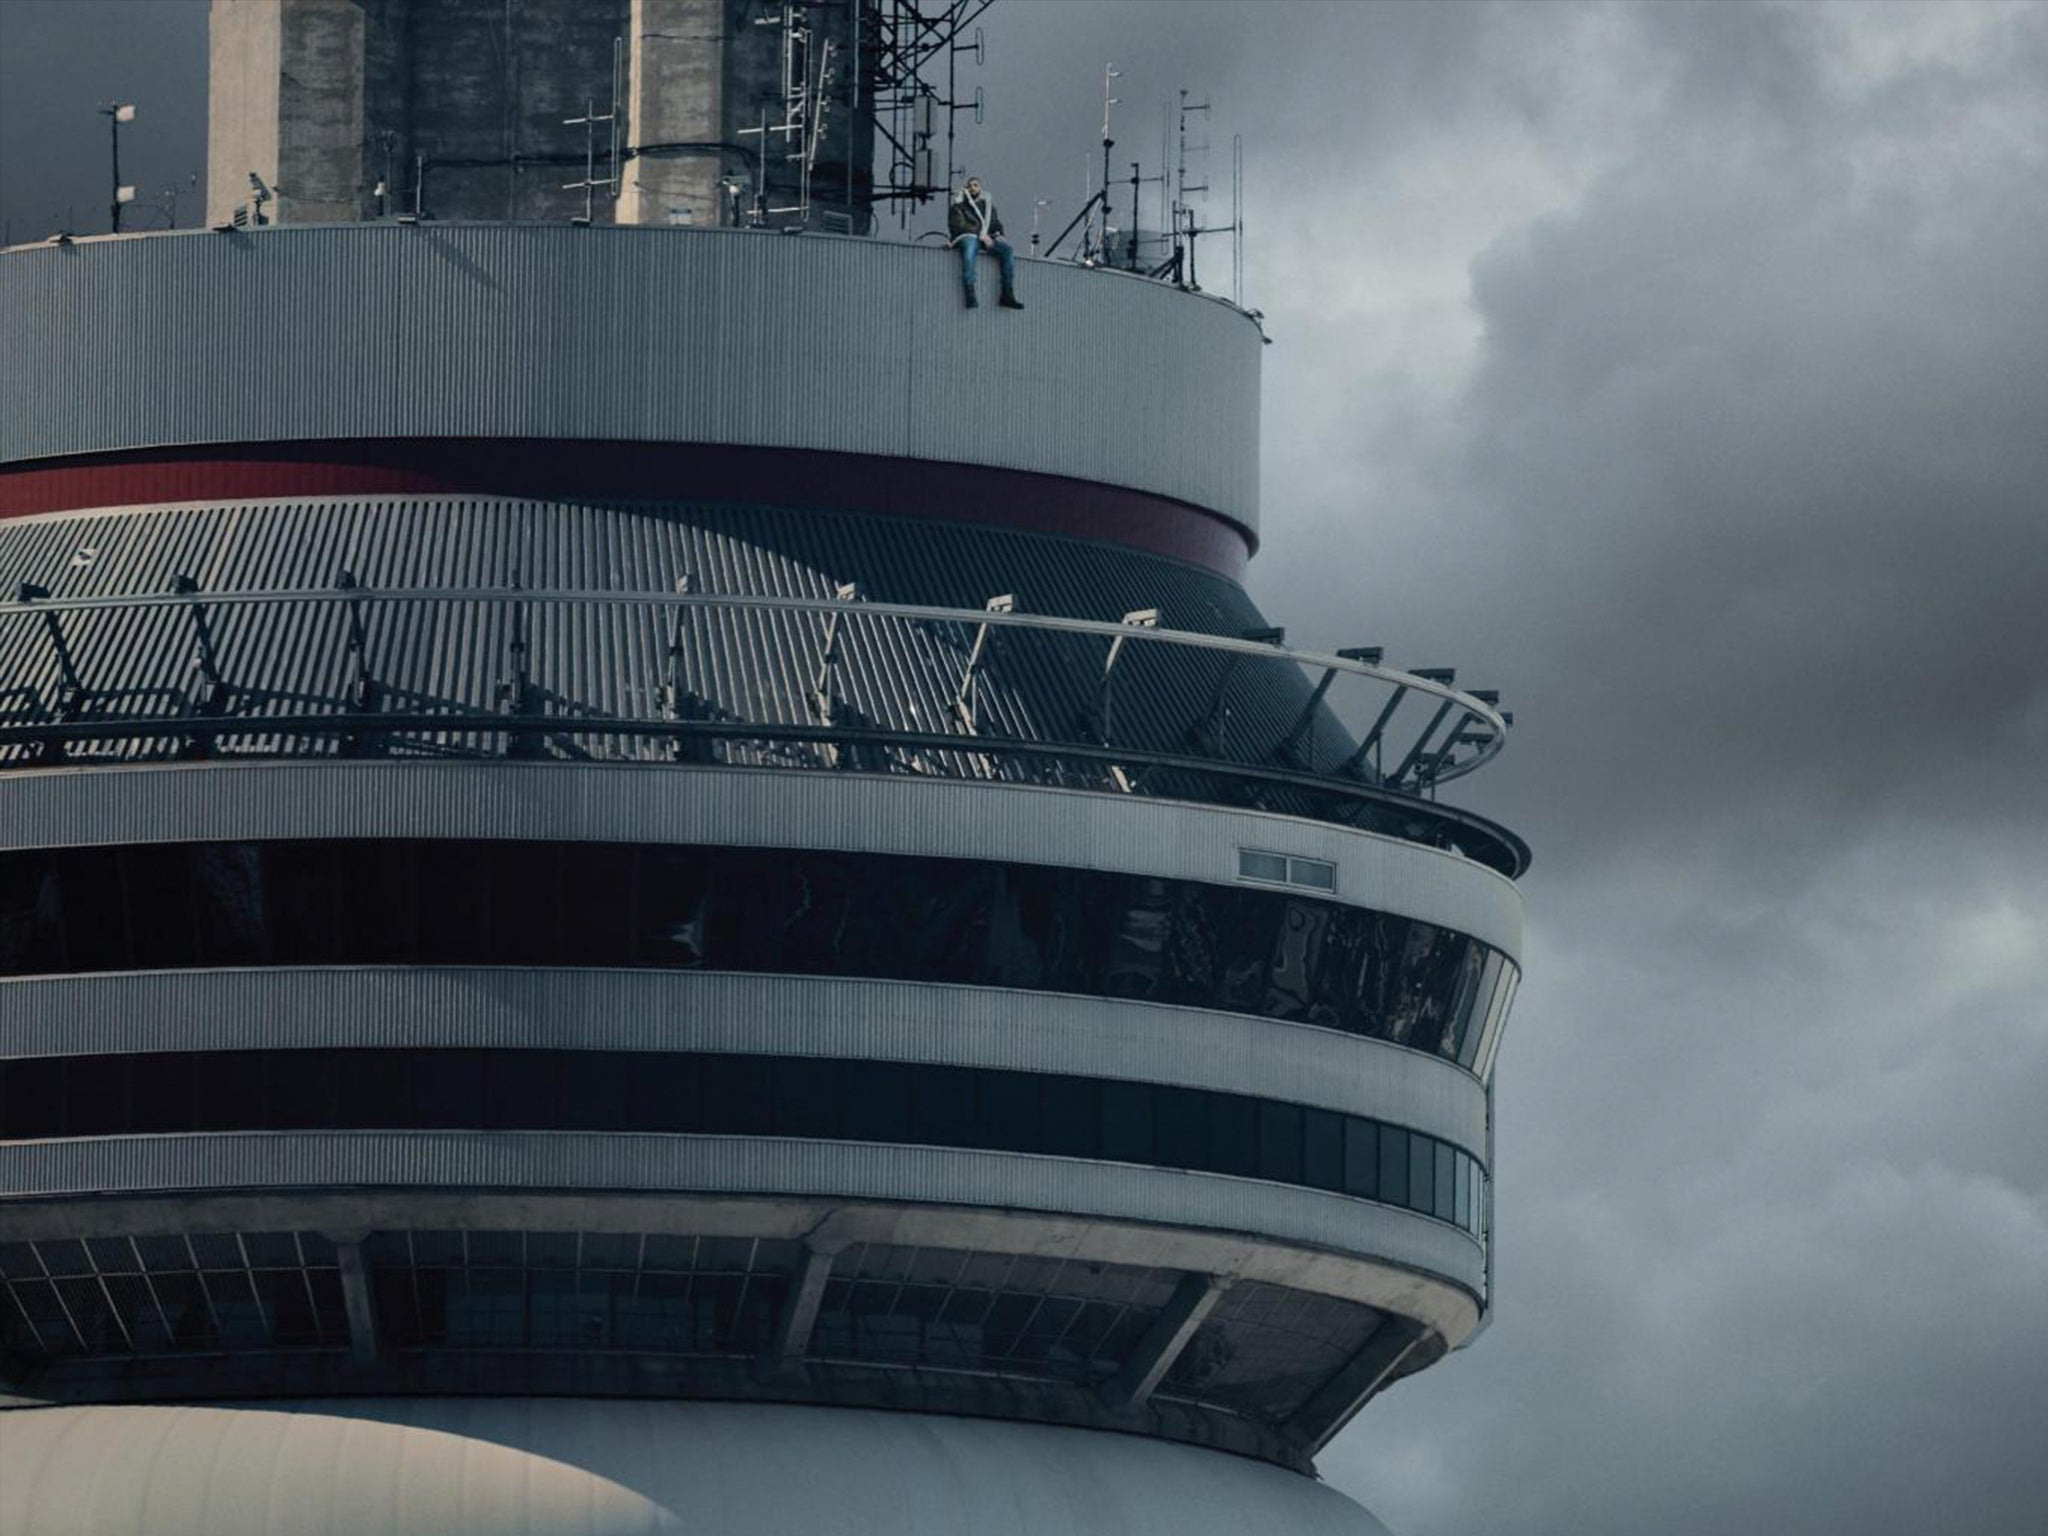 Drake Views Album Review First Impressions Of An Icy Restrained Release Reviews Culture